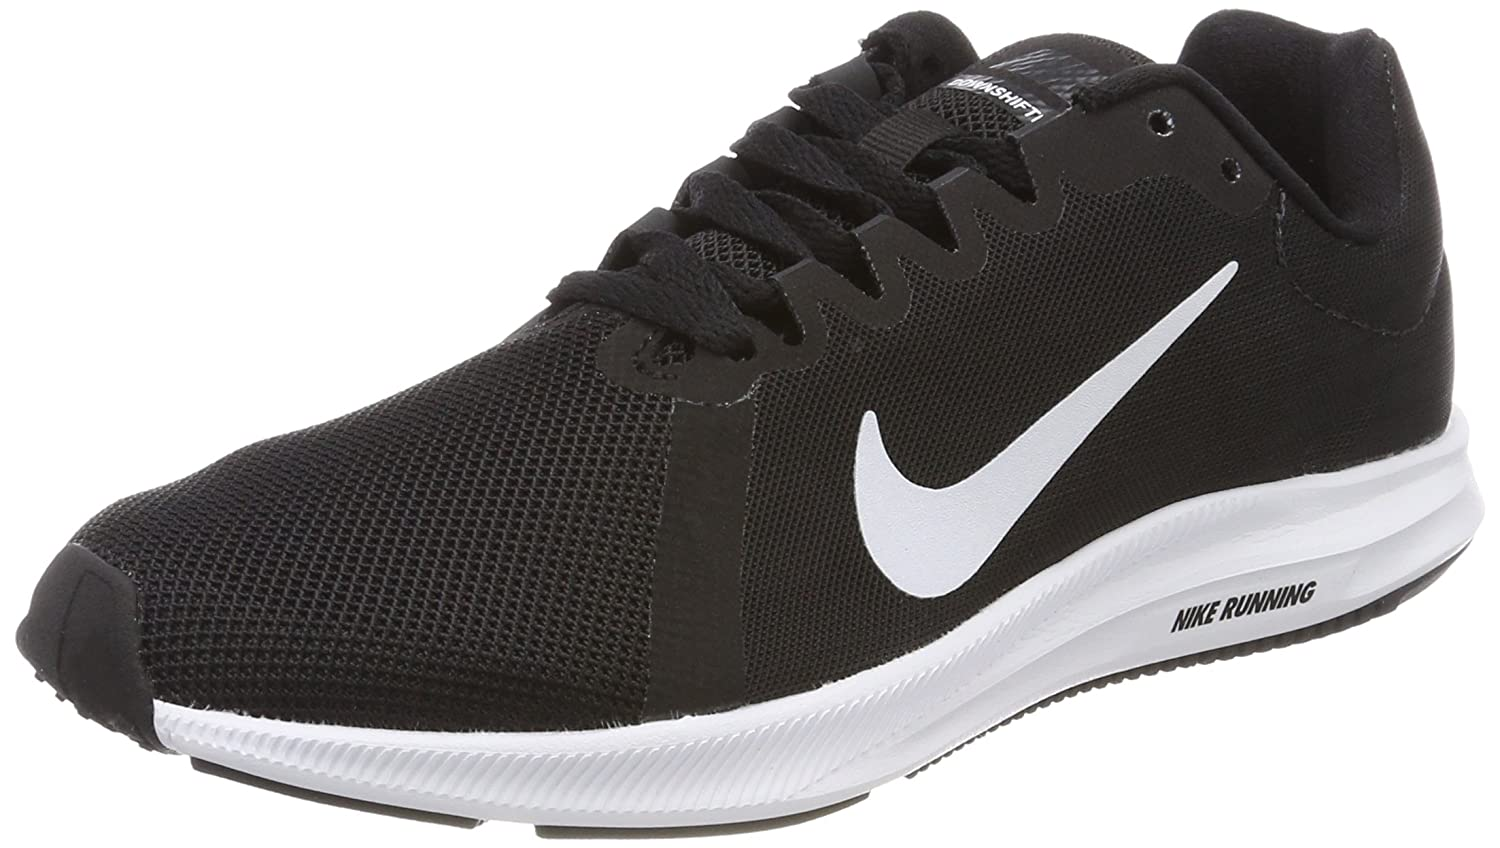 378aac9c89e6c Nike Women's Downshifter 8 Competition Running Shoes: Amazon.co.uk: Shoes &  Bags